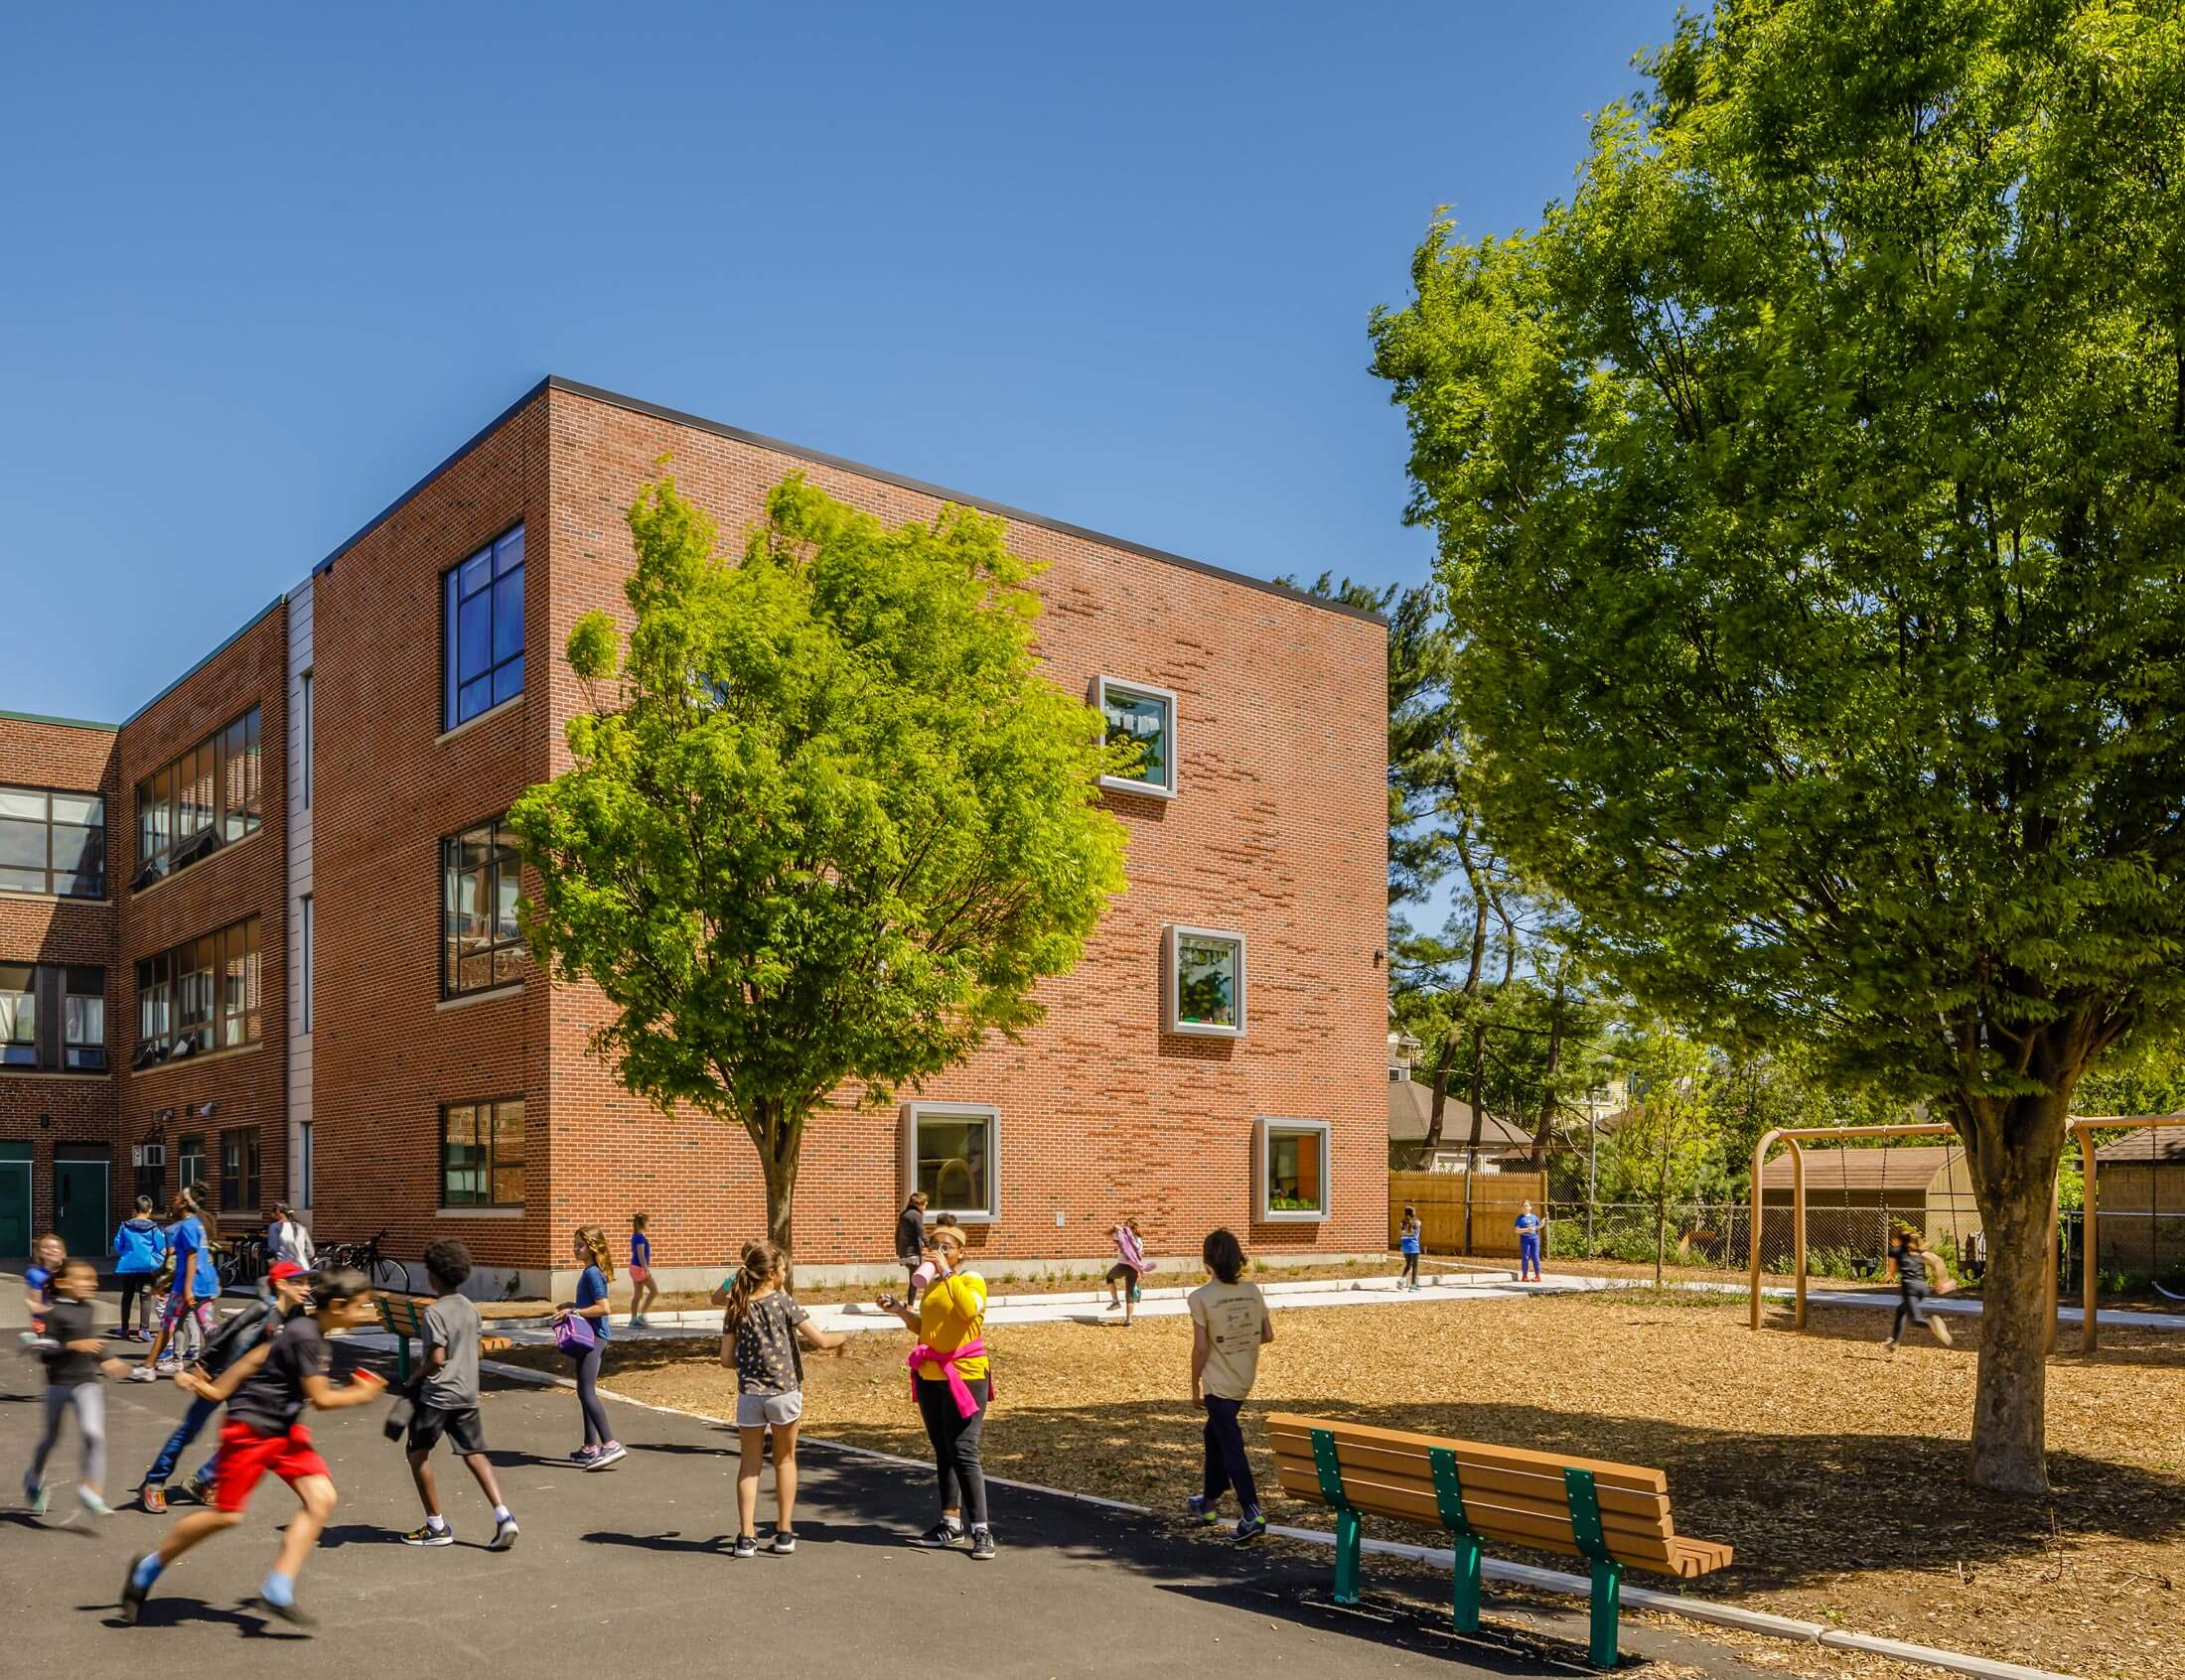 Students running on the pavement in front of the addition to the Hardy School.